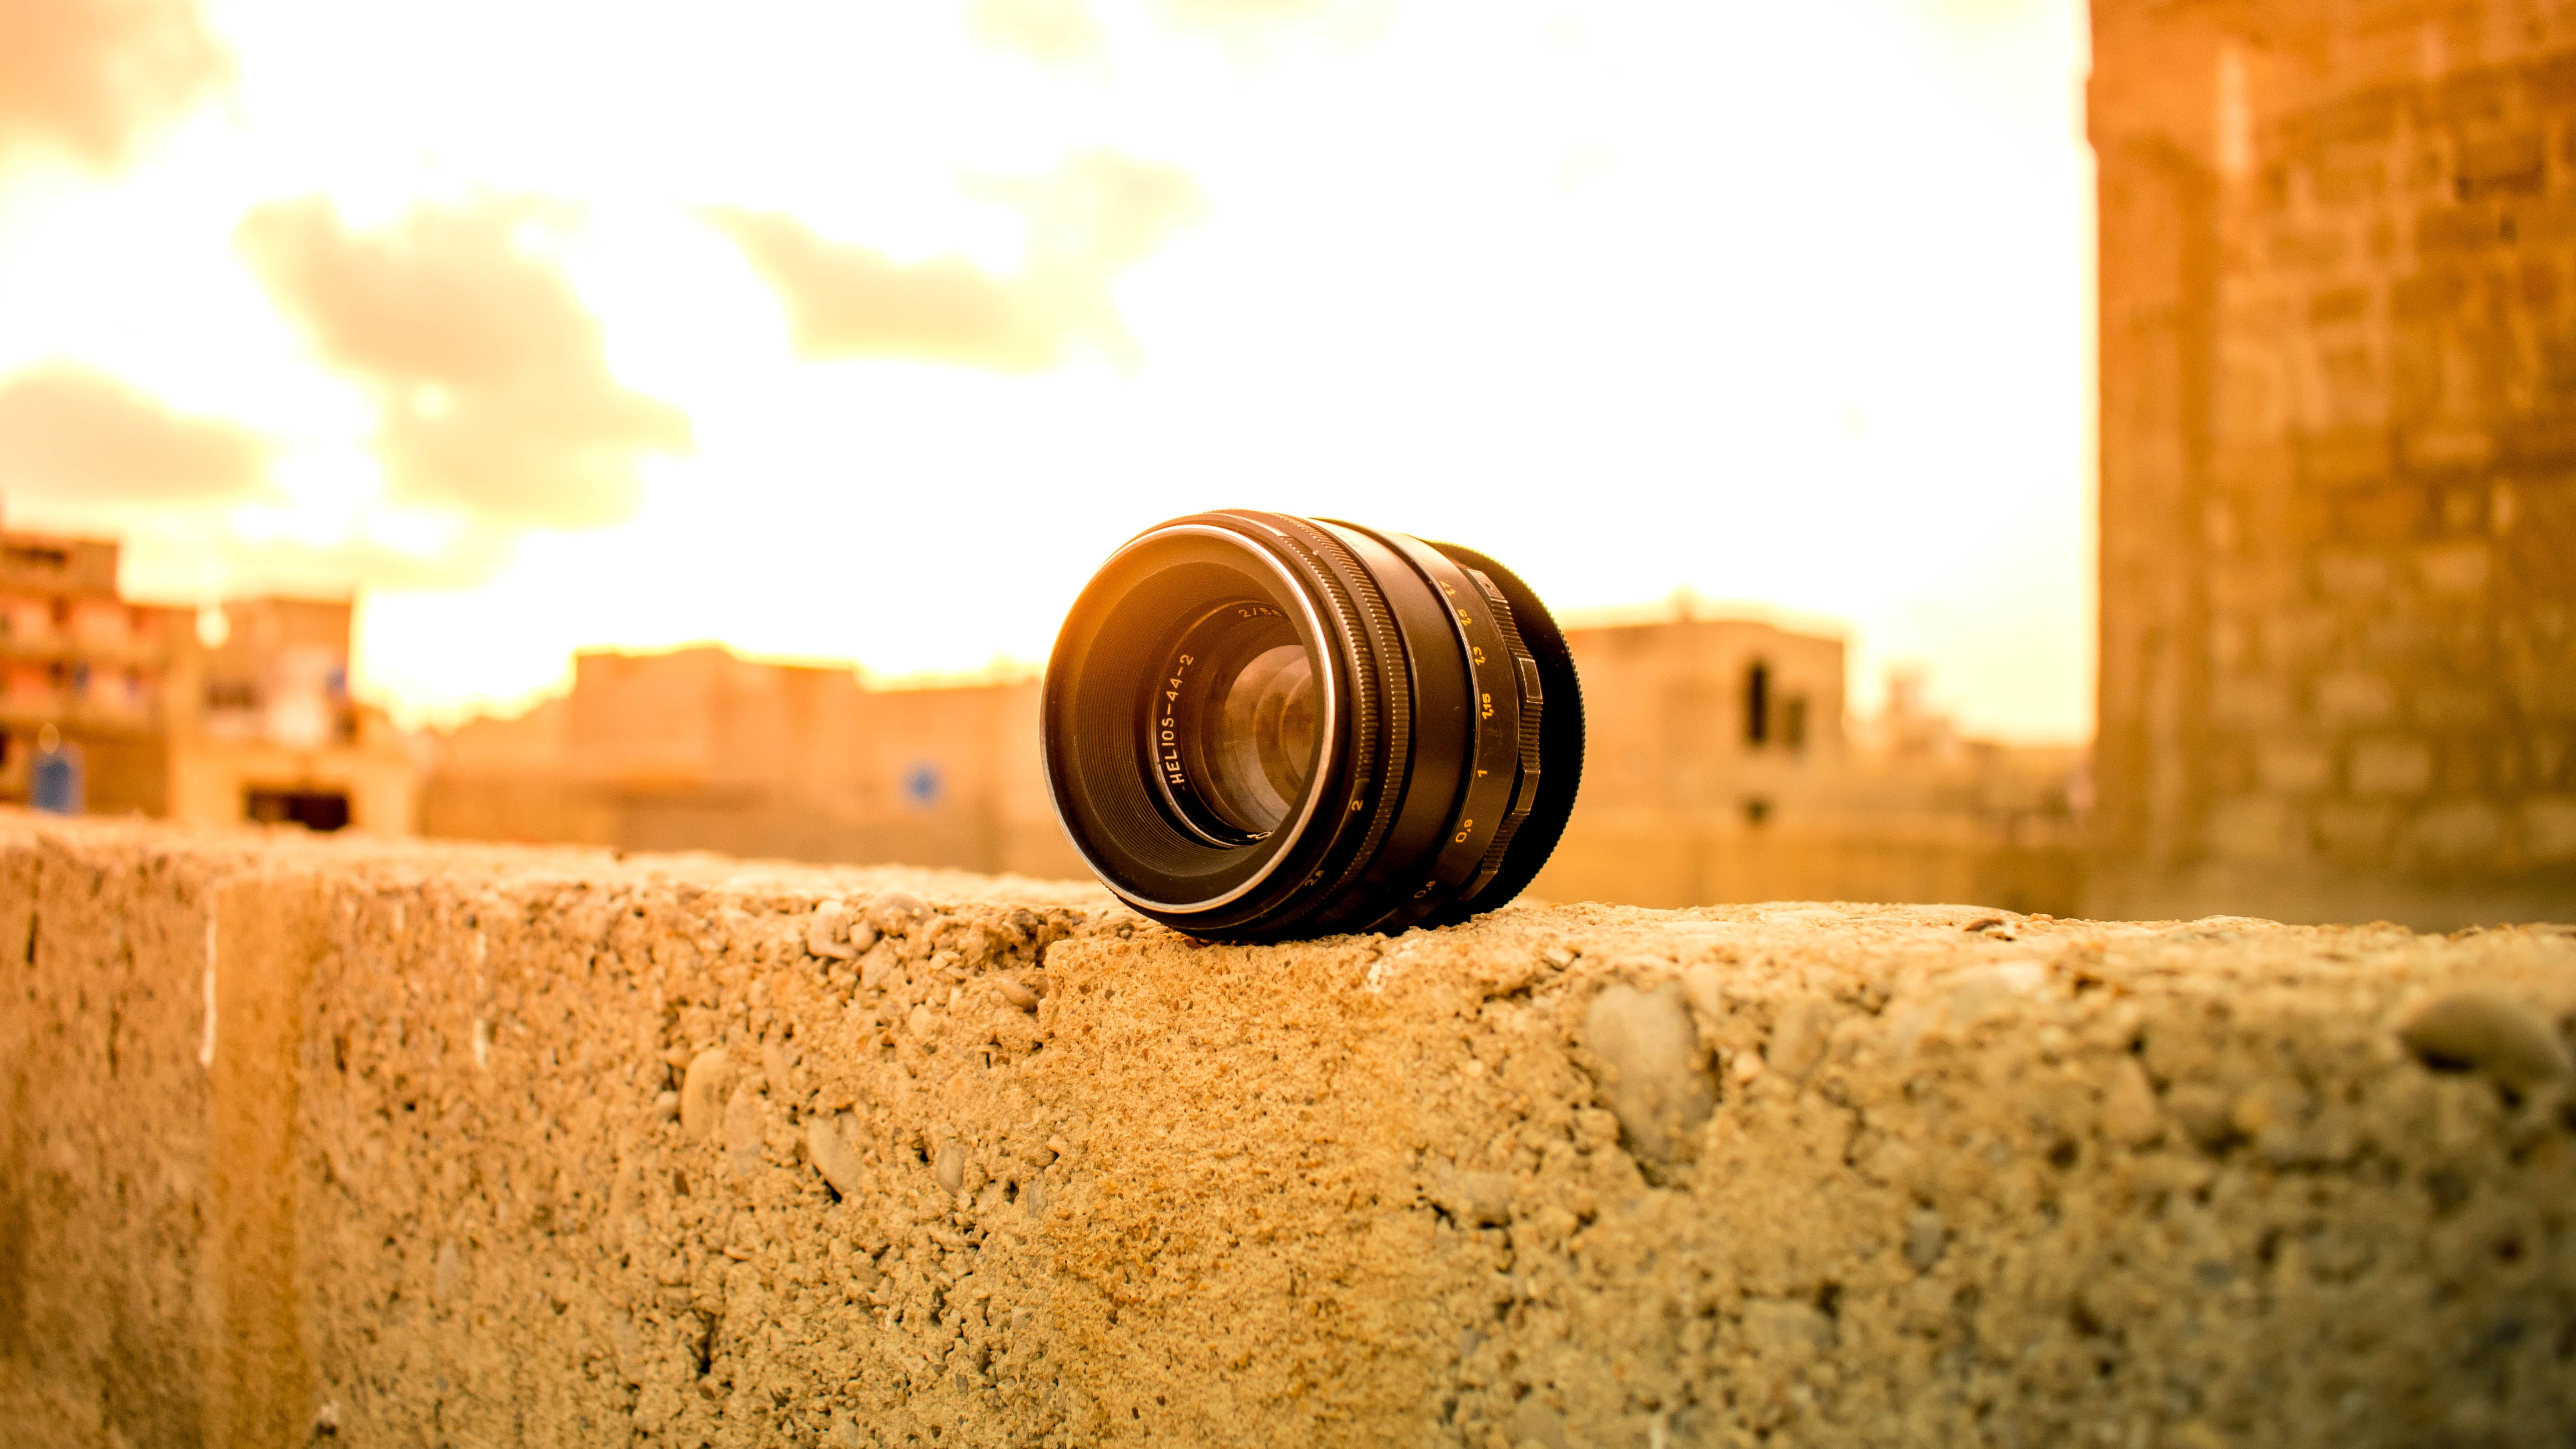 Free stock photo of 18-55mm, 2018, 50mm, 58mm f/2